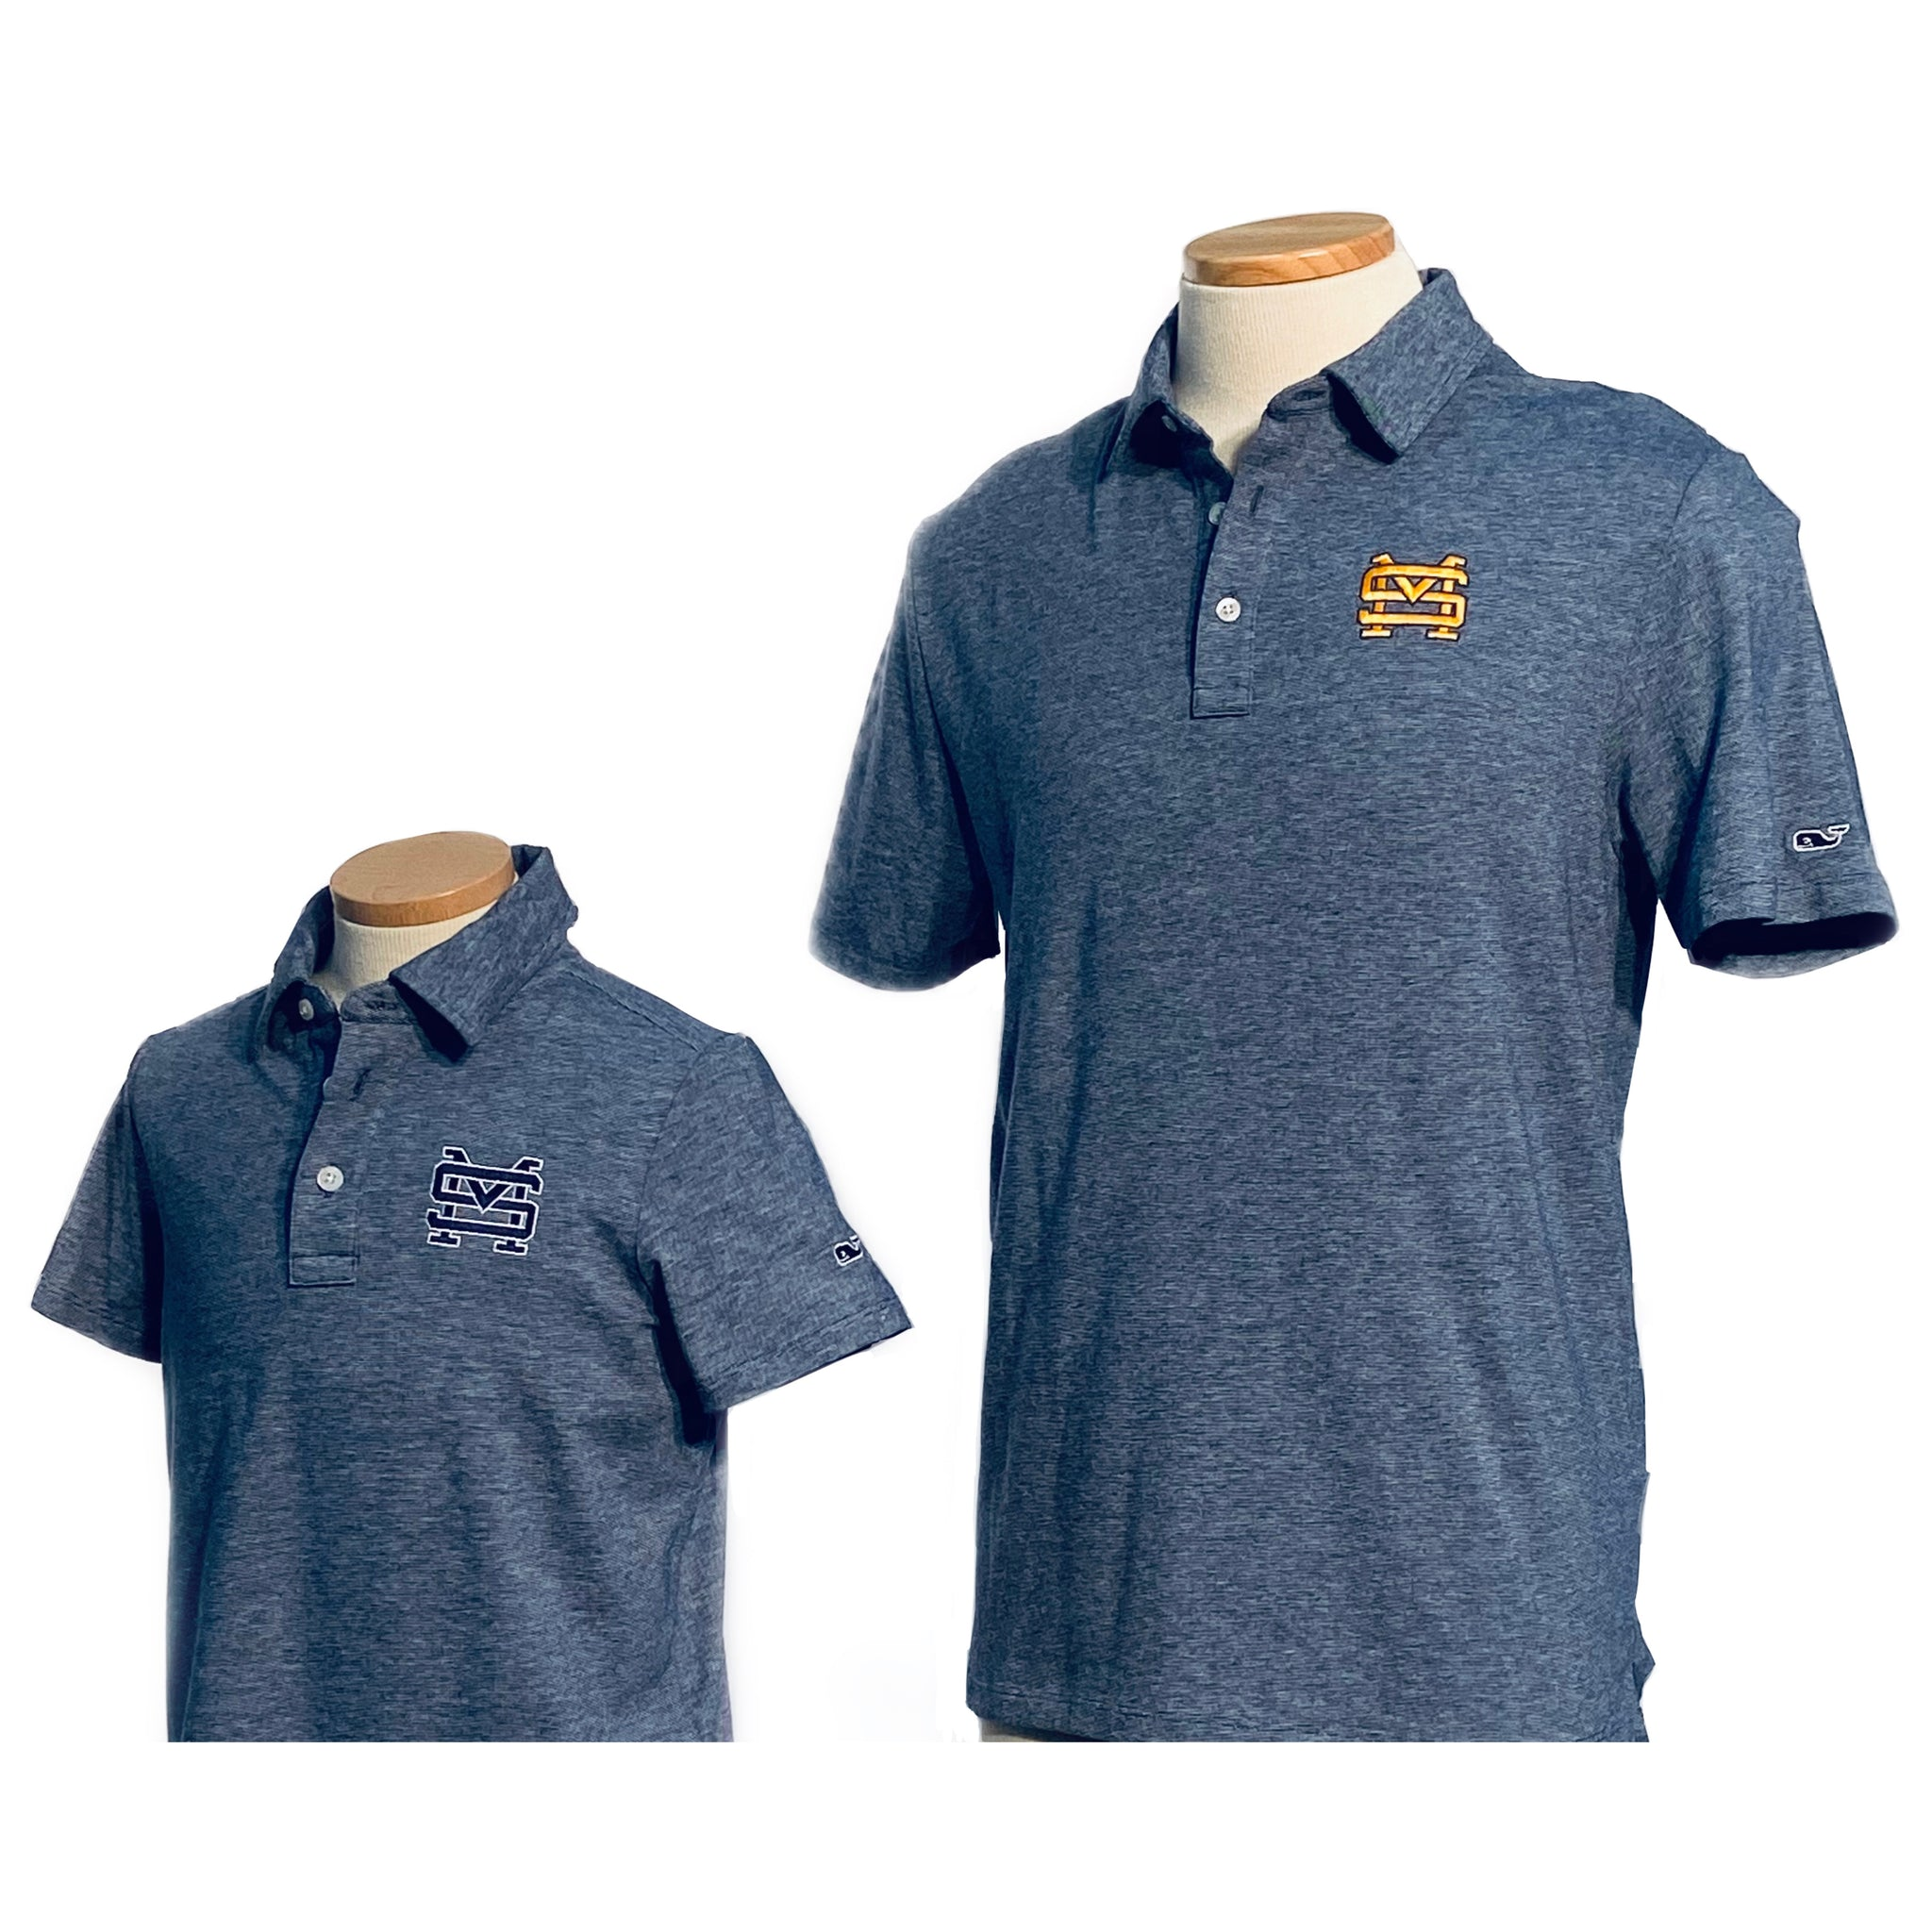 Vineyard Vines Edgartown Polo for Dad and Lad